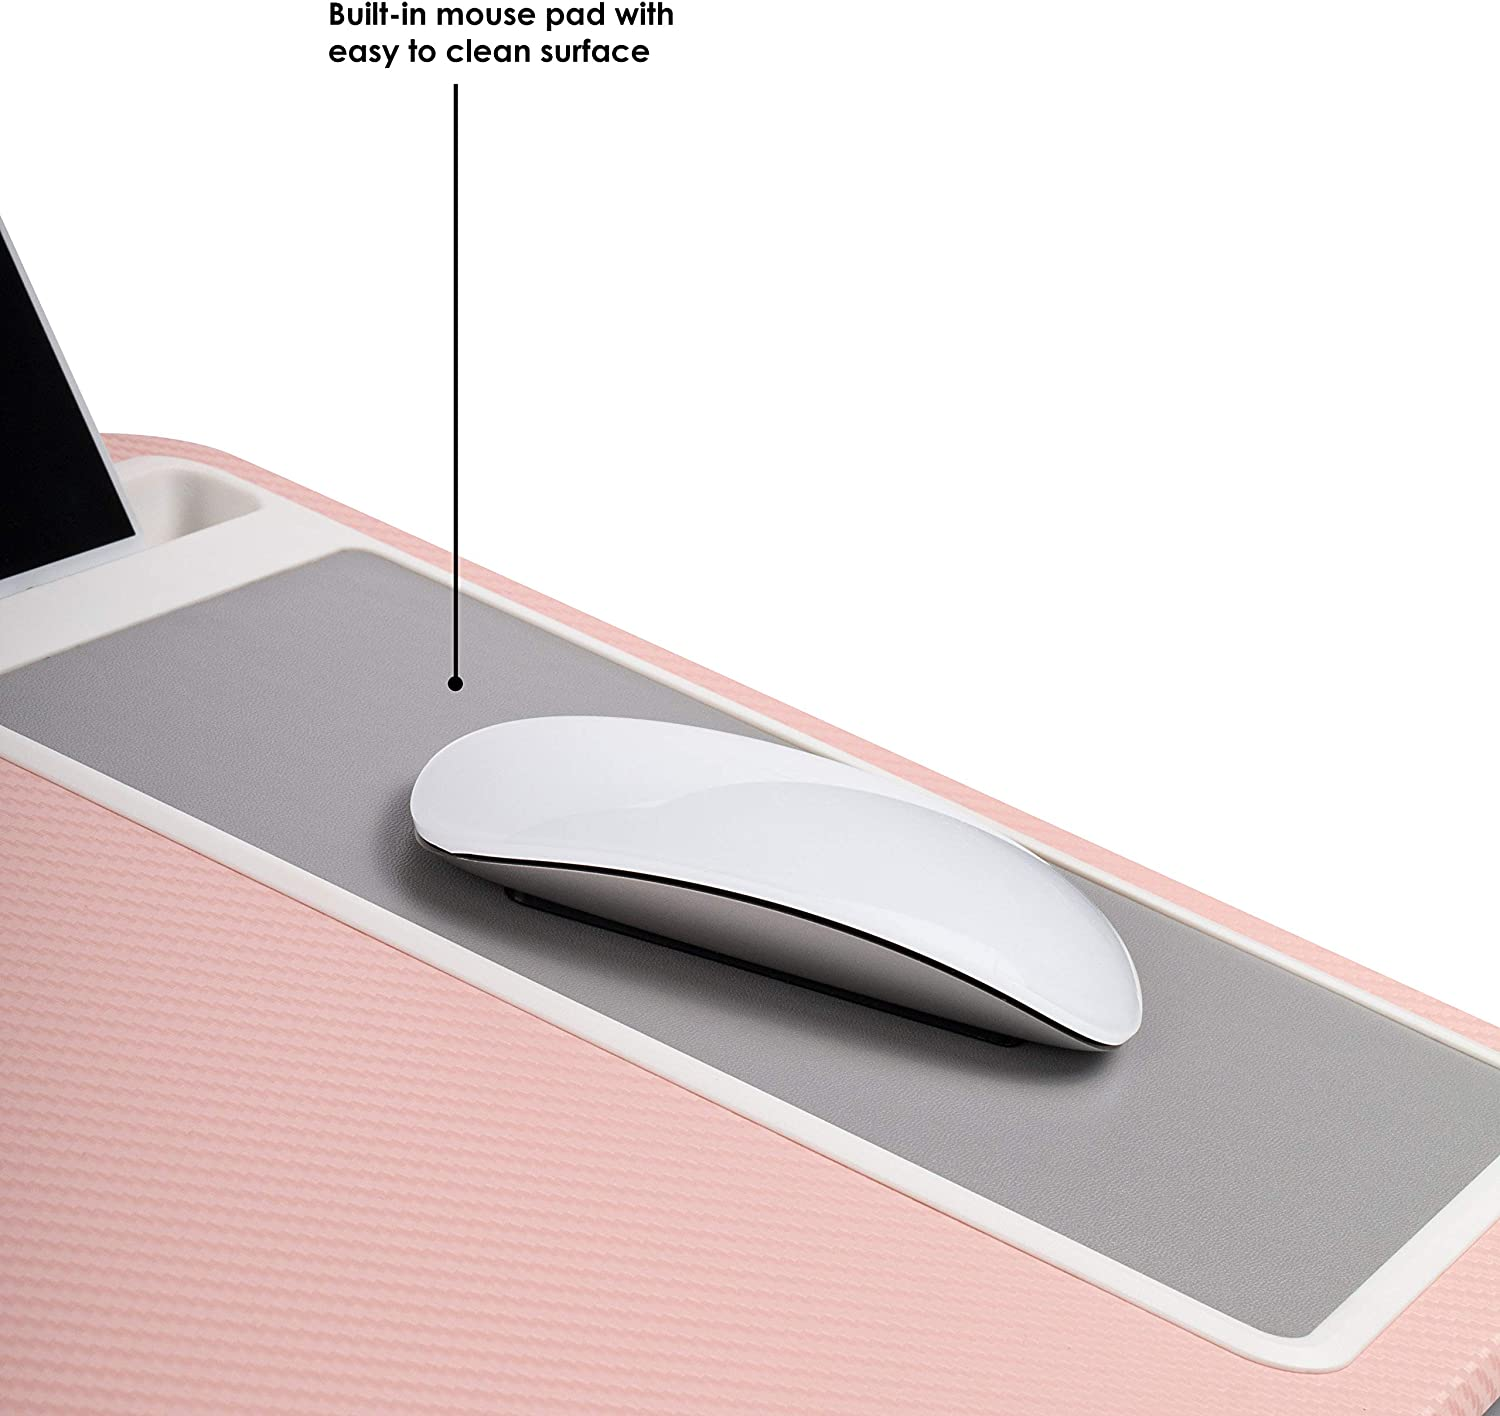 LapGear Home Office Lap Desk with Device Ledge, Mouse Pad, and Phone Holder - Pink - Fits Up to 15.6 Inch Laptops - Style No. 91584